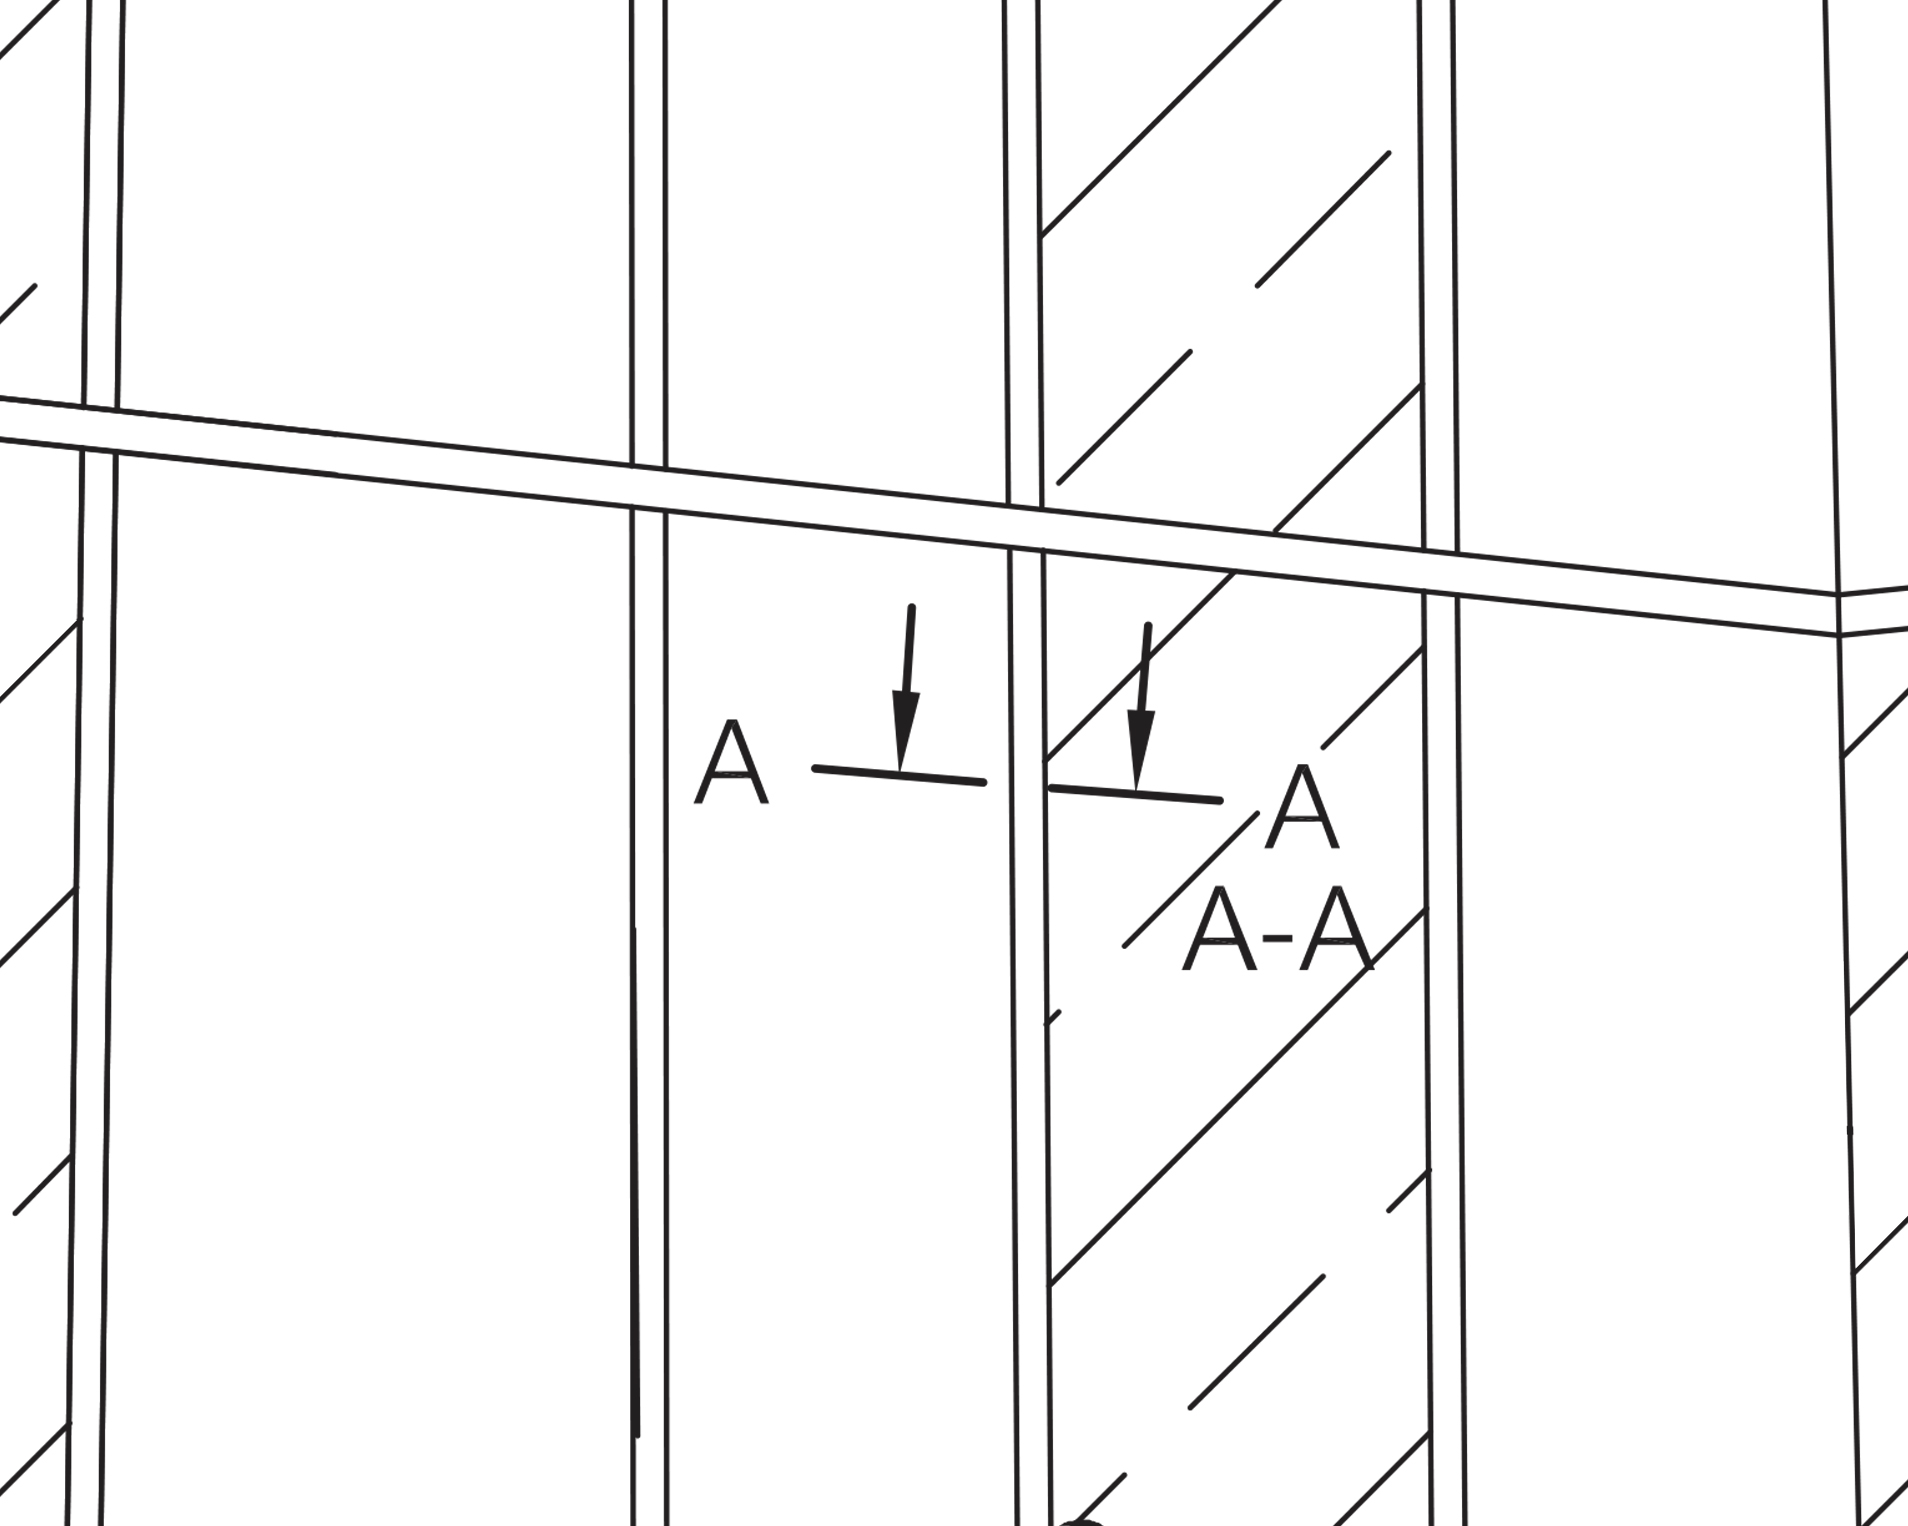 Horizzontal Cross / Section A-A